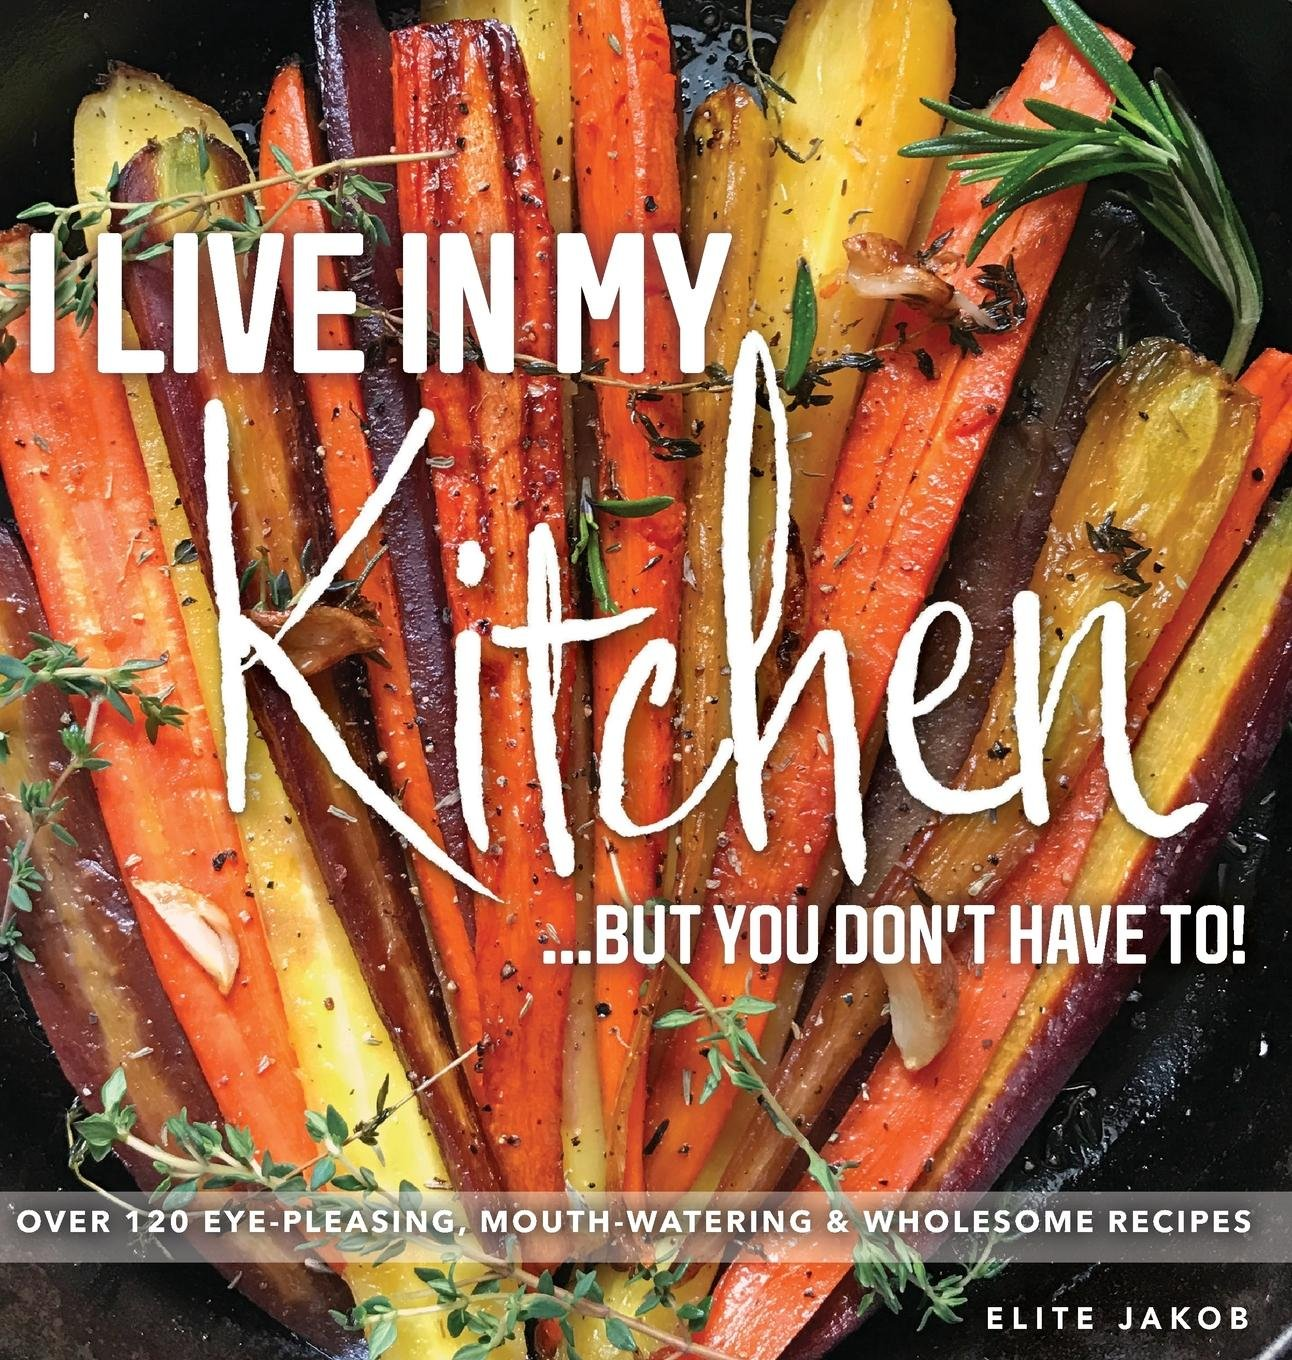 I Live in My Kitchen: But You Don't Have To! by Elite Jakob, LLC